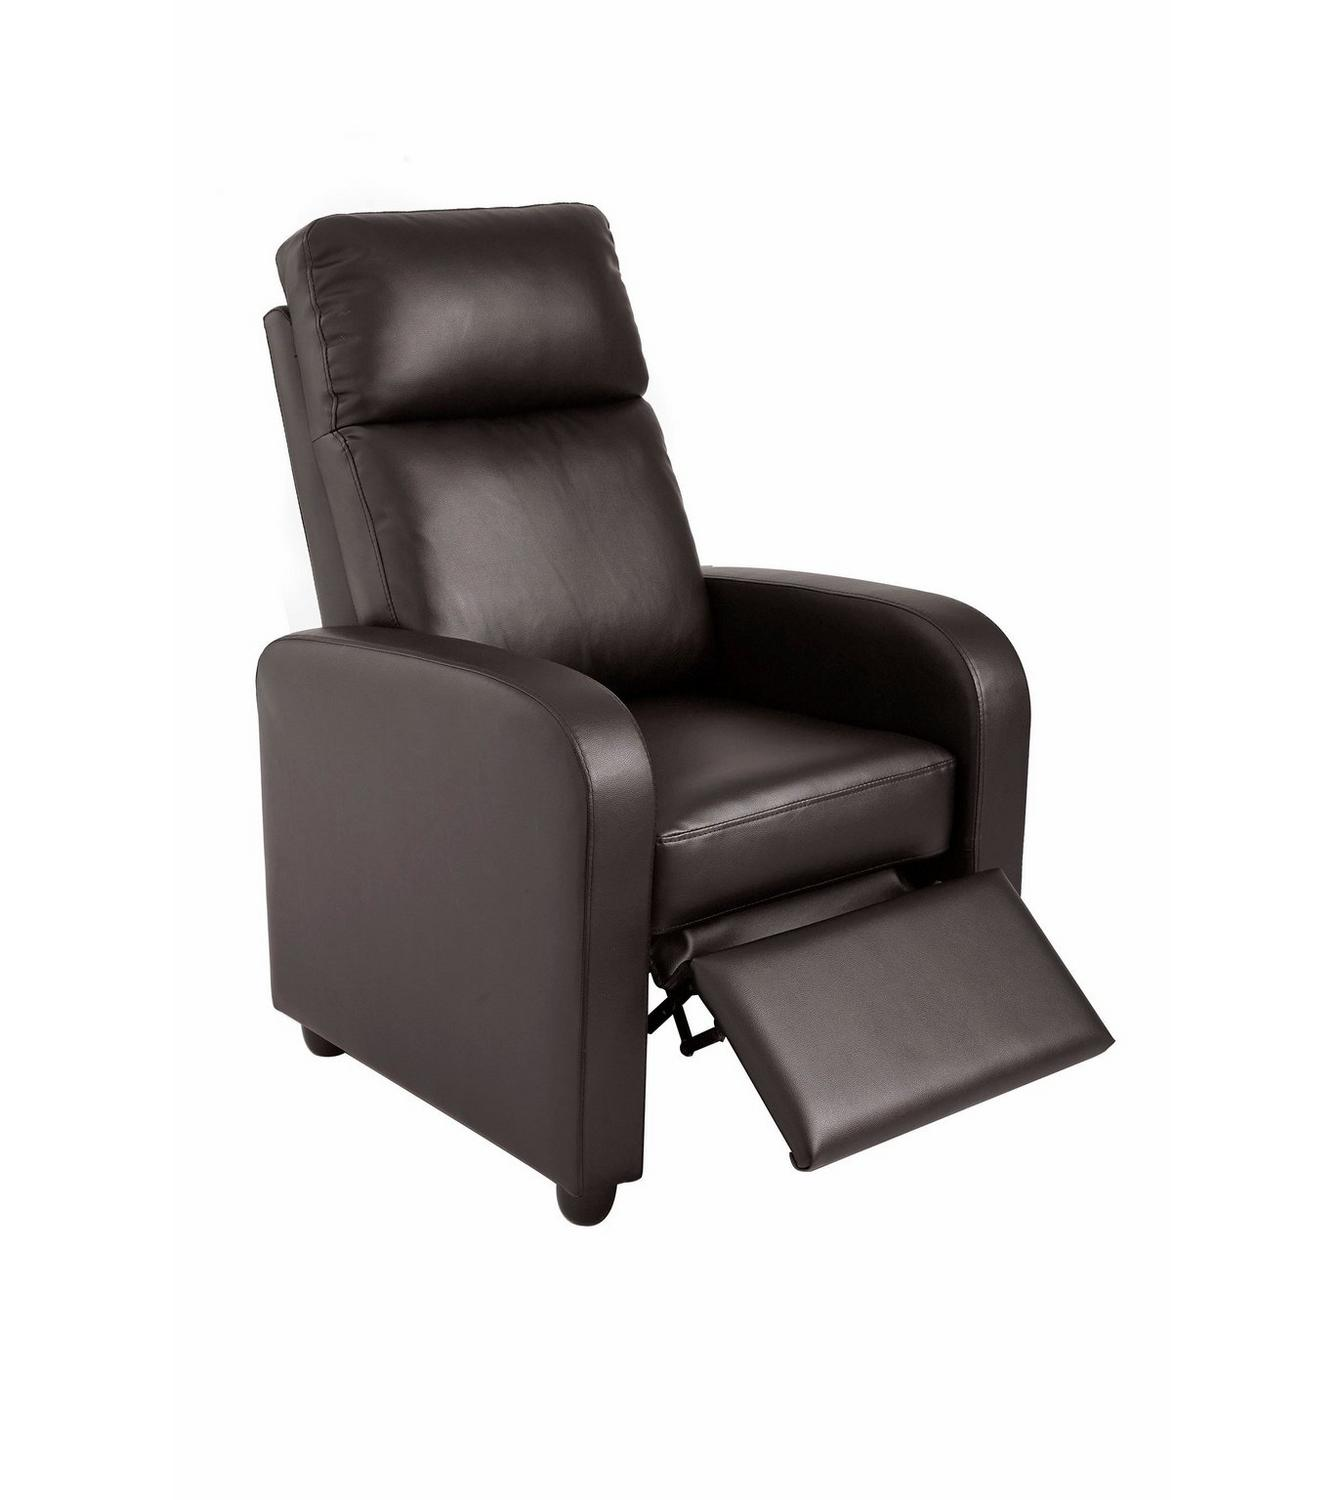 Bluetooth Recliner Gaming Chair With Speakers